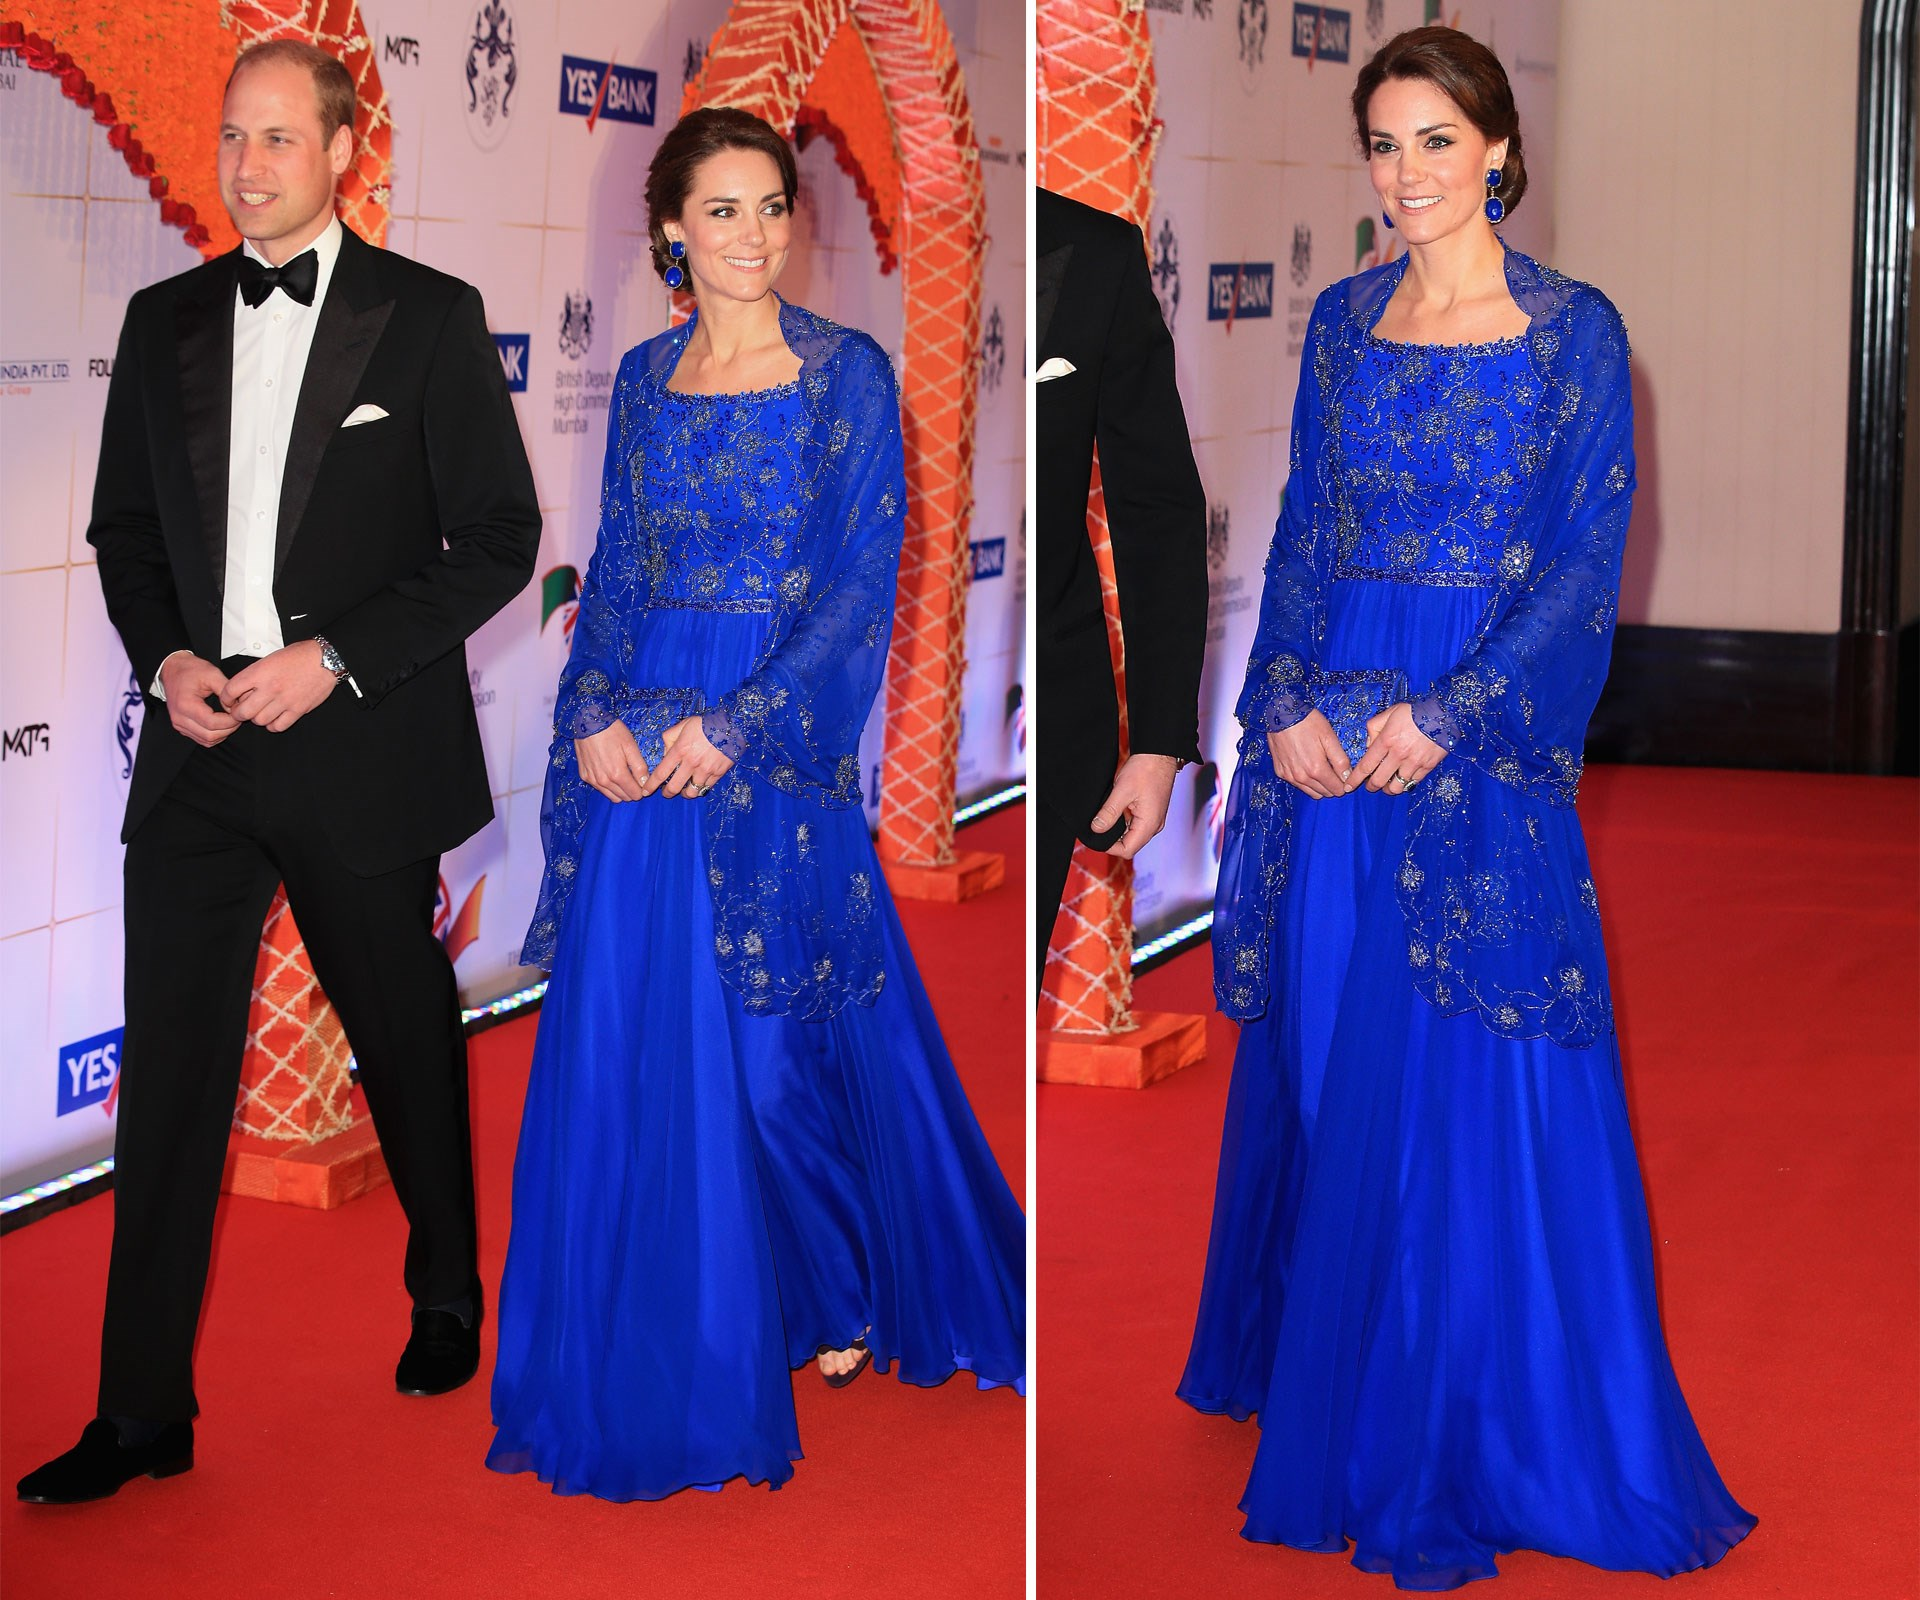 Kate dons a stunning blue gown as she attends a reception at the Taj Mahal Palace Hotel with her husband.